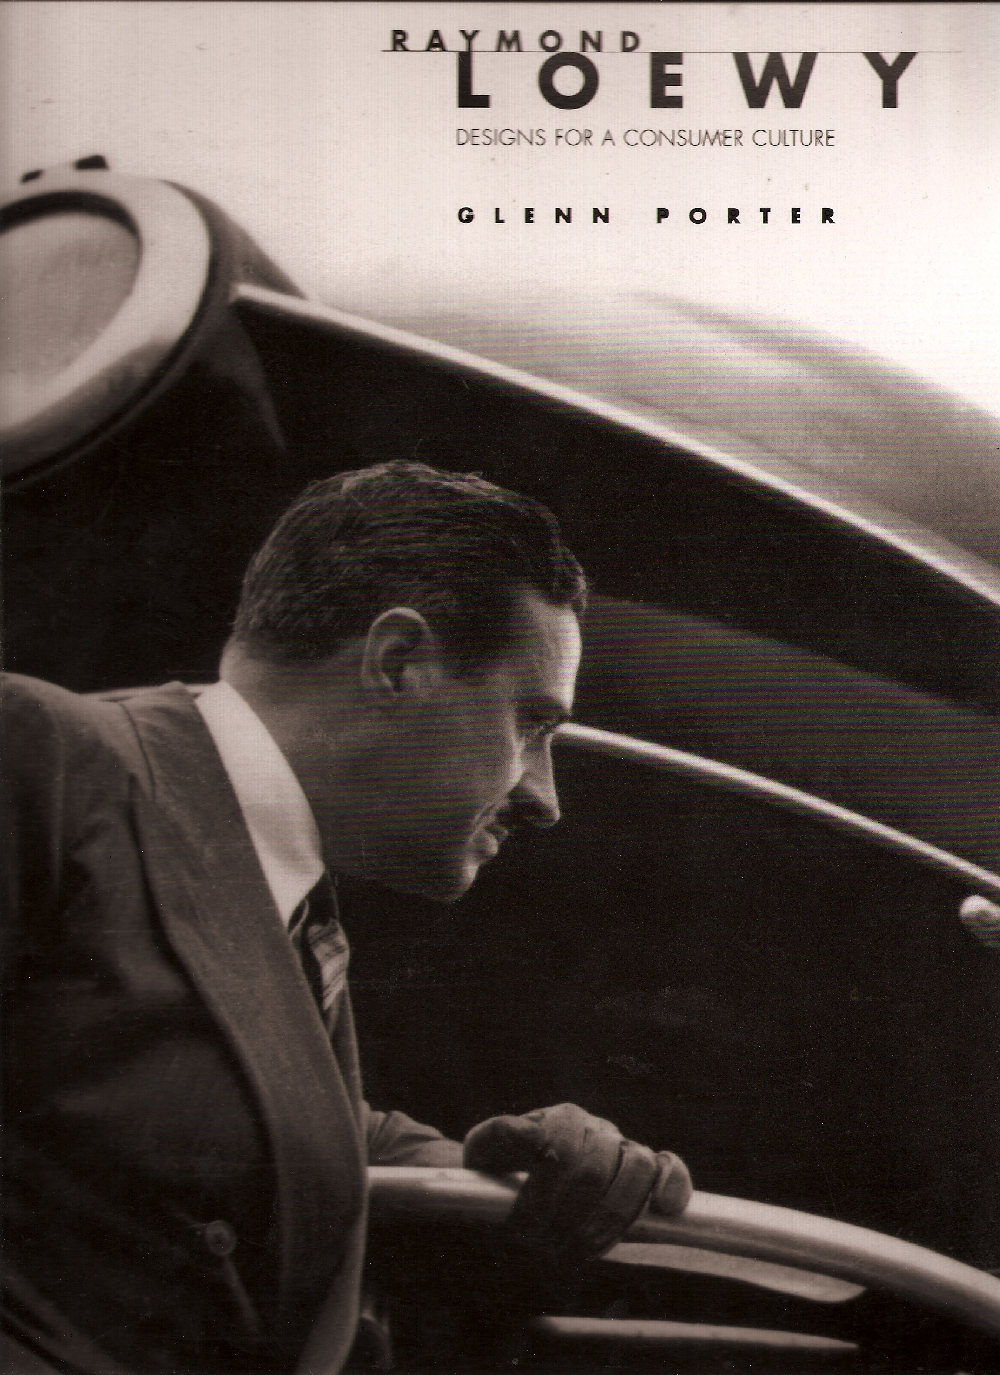 raymond loewy Discover book depository's huge selection of raymond-loewy books online free delivery worldwide on over 19 million titles.